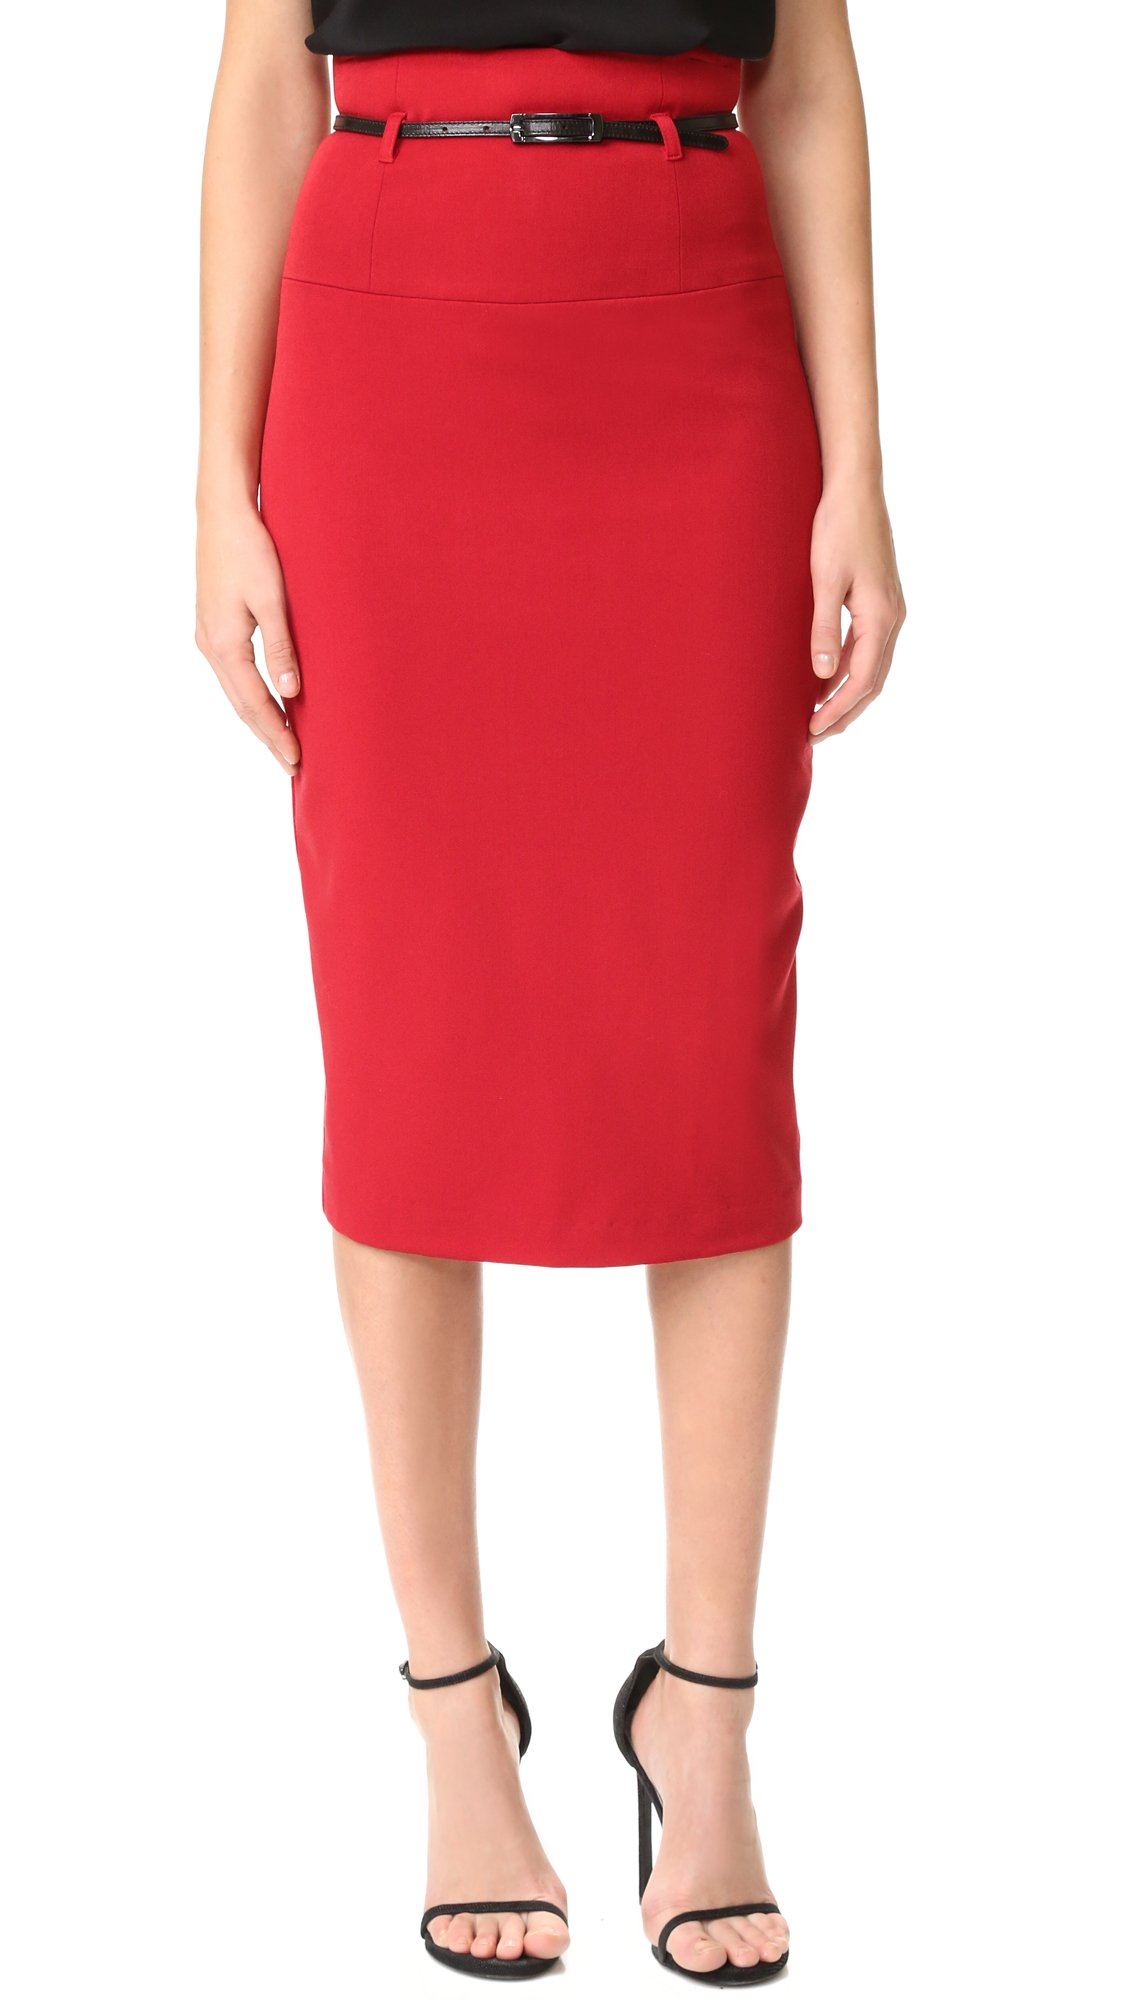 Black Halo Women's High Waisted Pencil Skirt, Red, 2